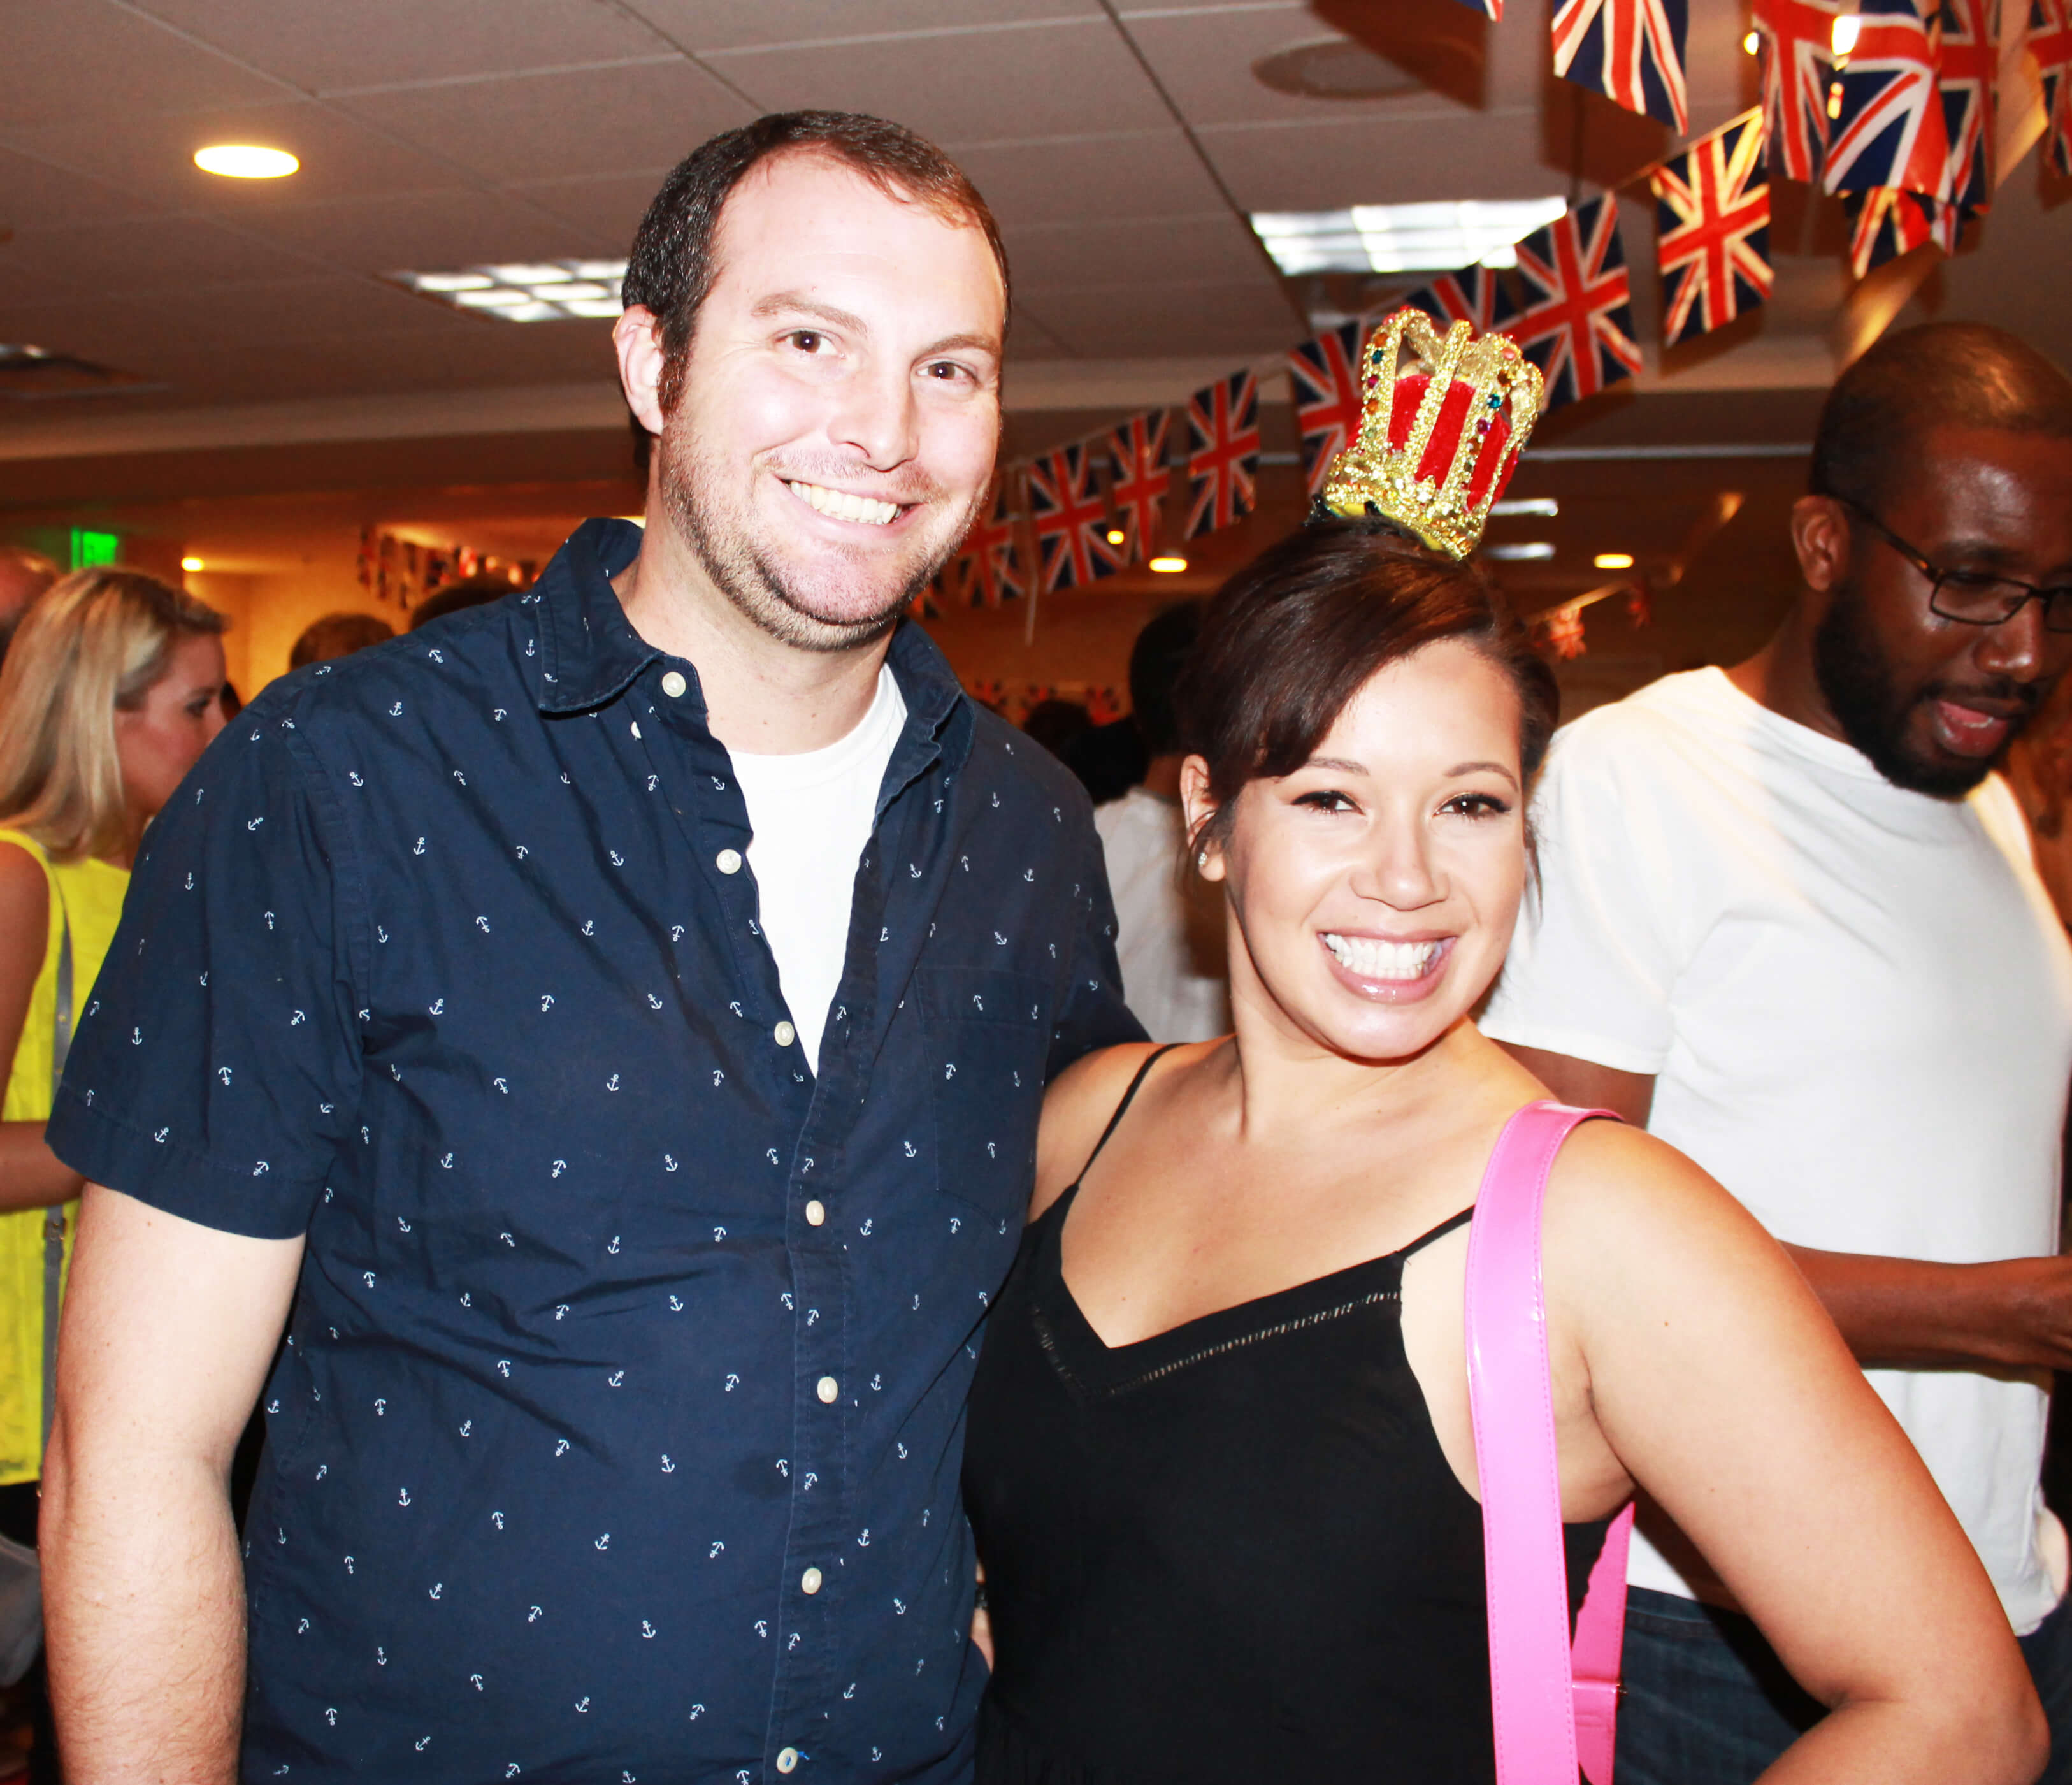 2 people Florida's BARCLS Party